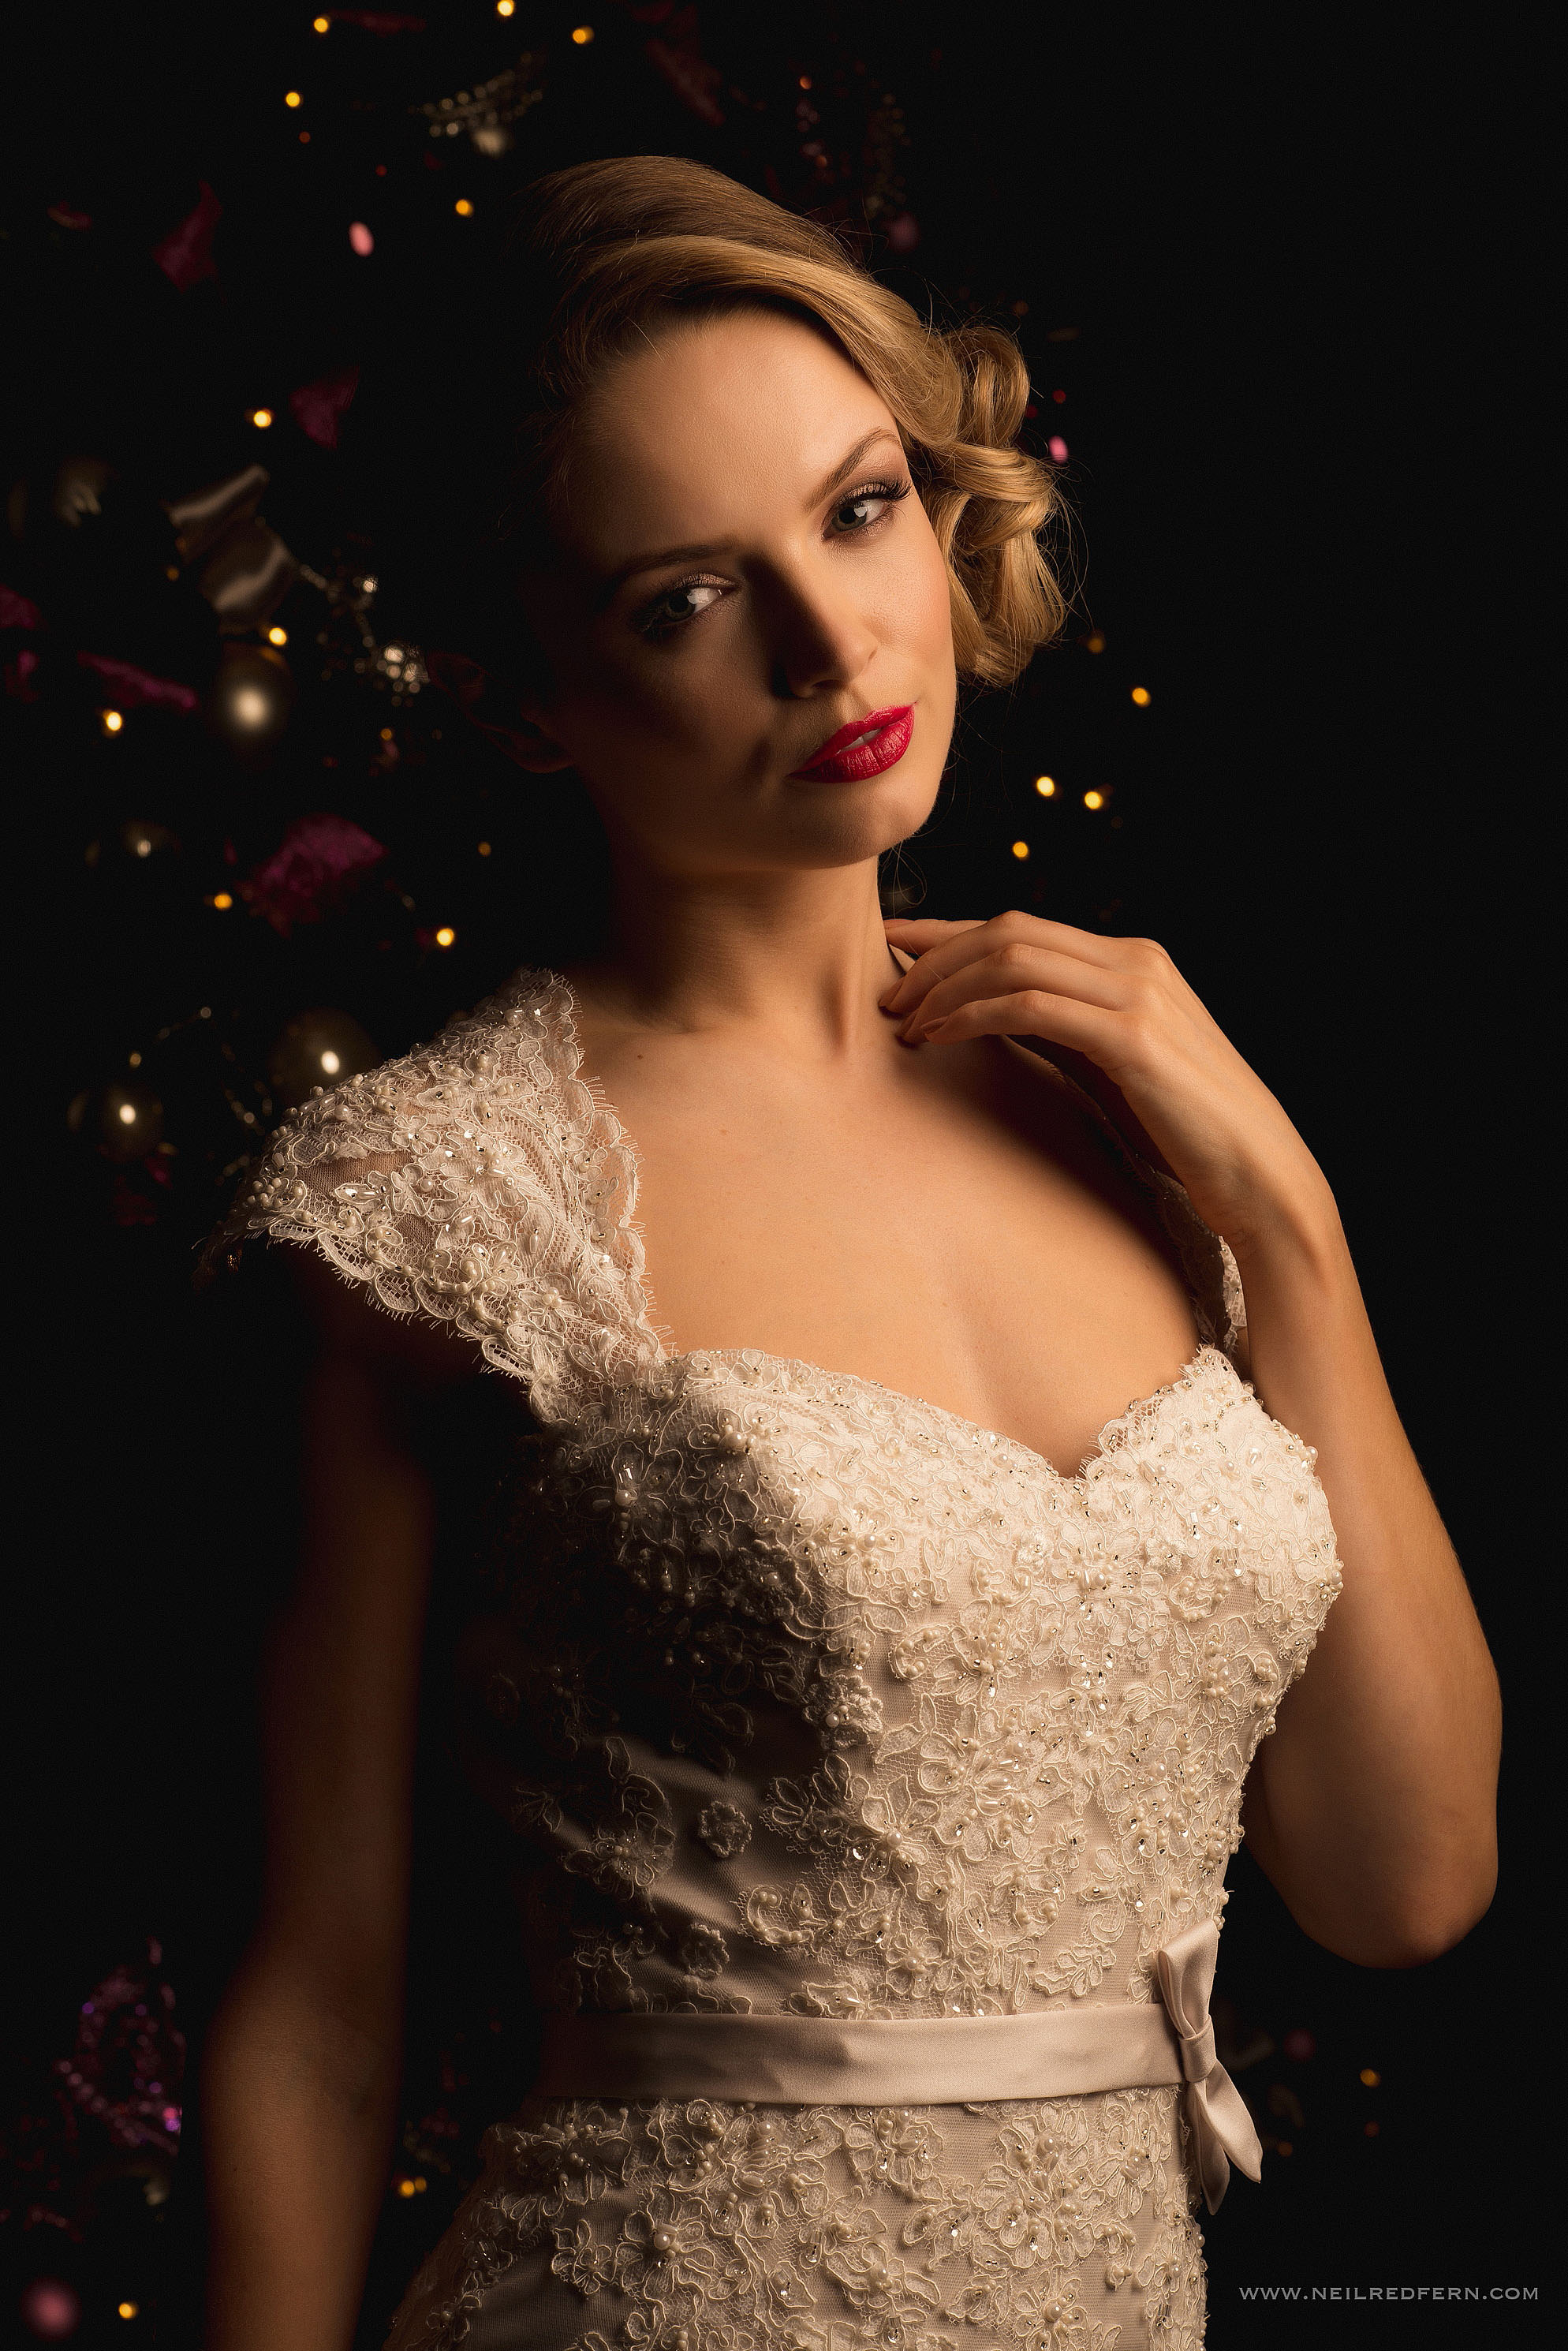 winter portrait photographs at Belle Epoque Knutsford 3